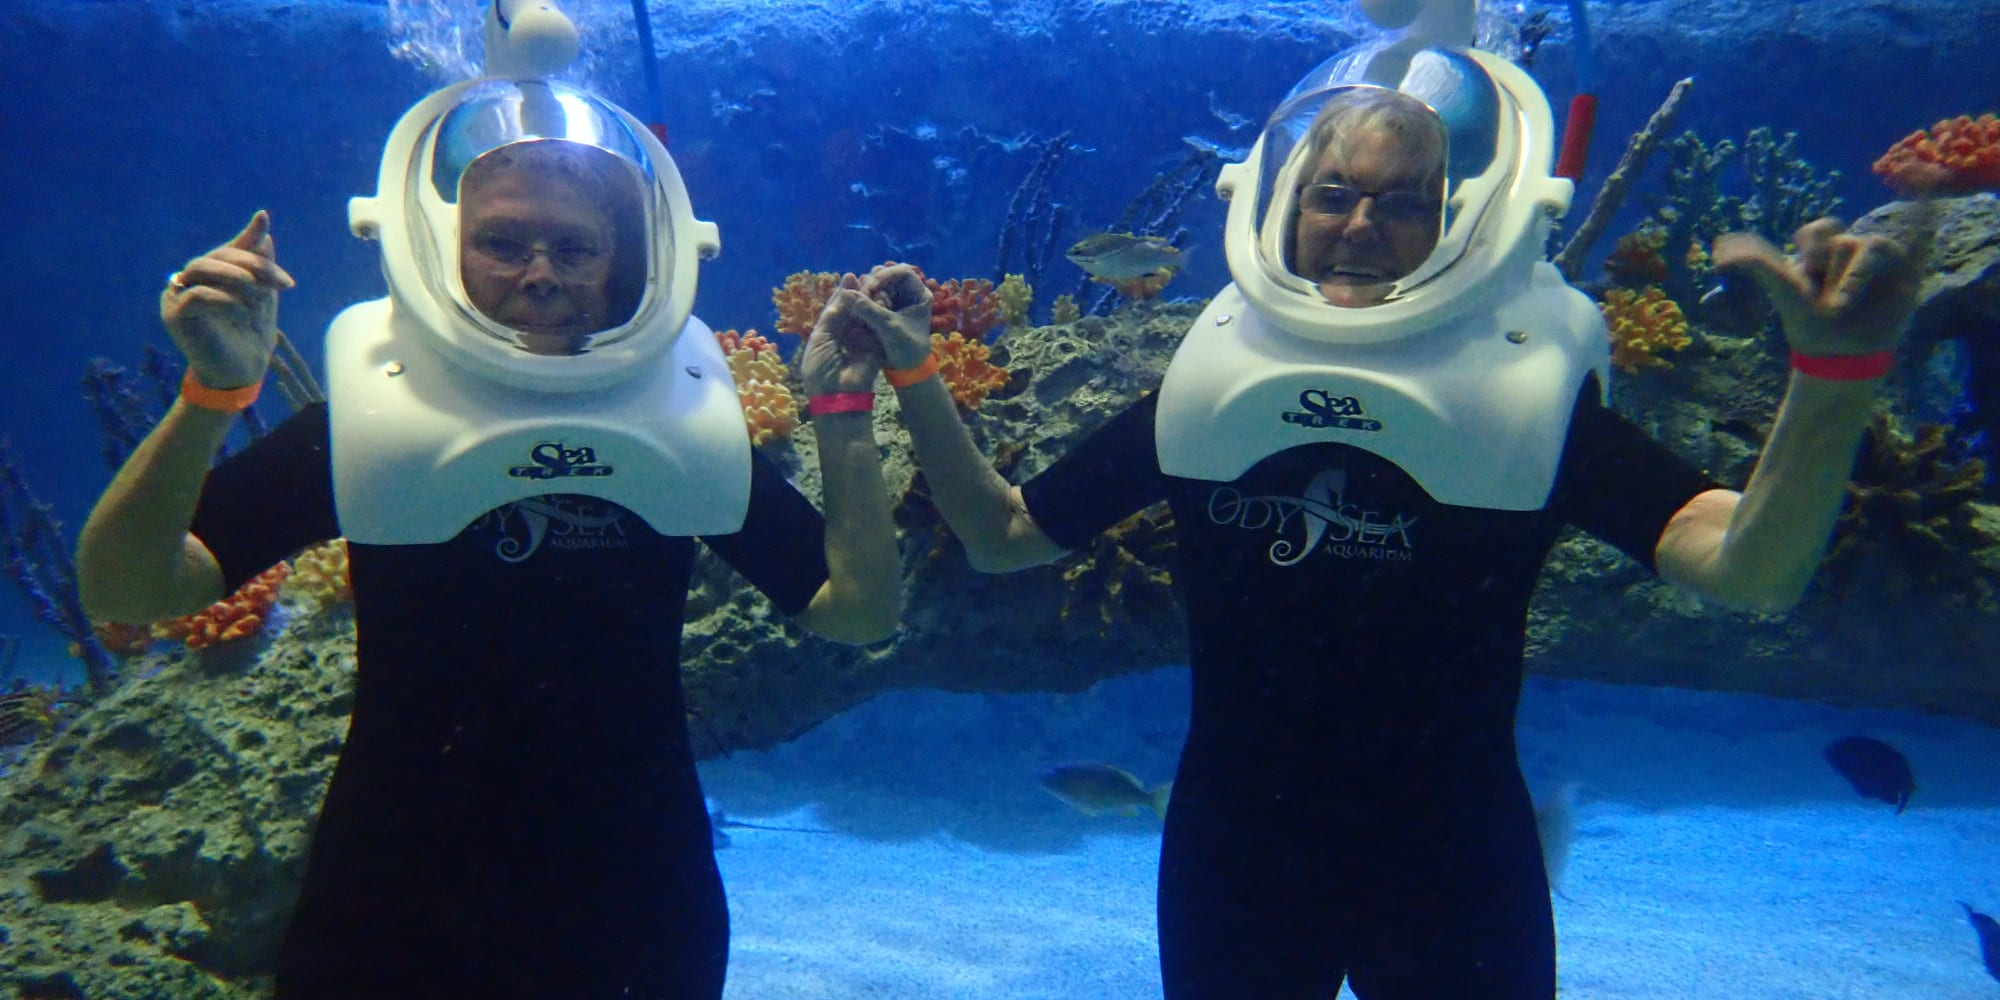 Two residents from Edgewood Point Assisted Living in Beaverton, Oregon scuba diving